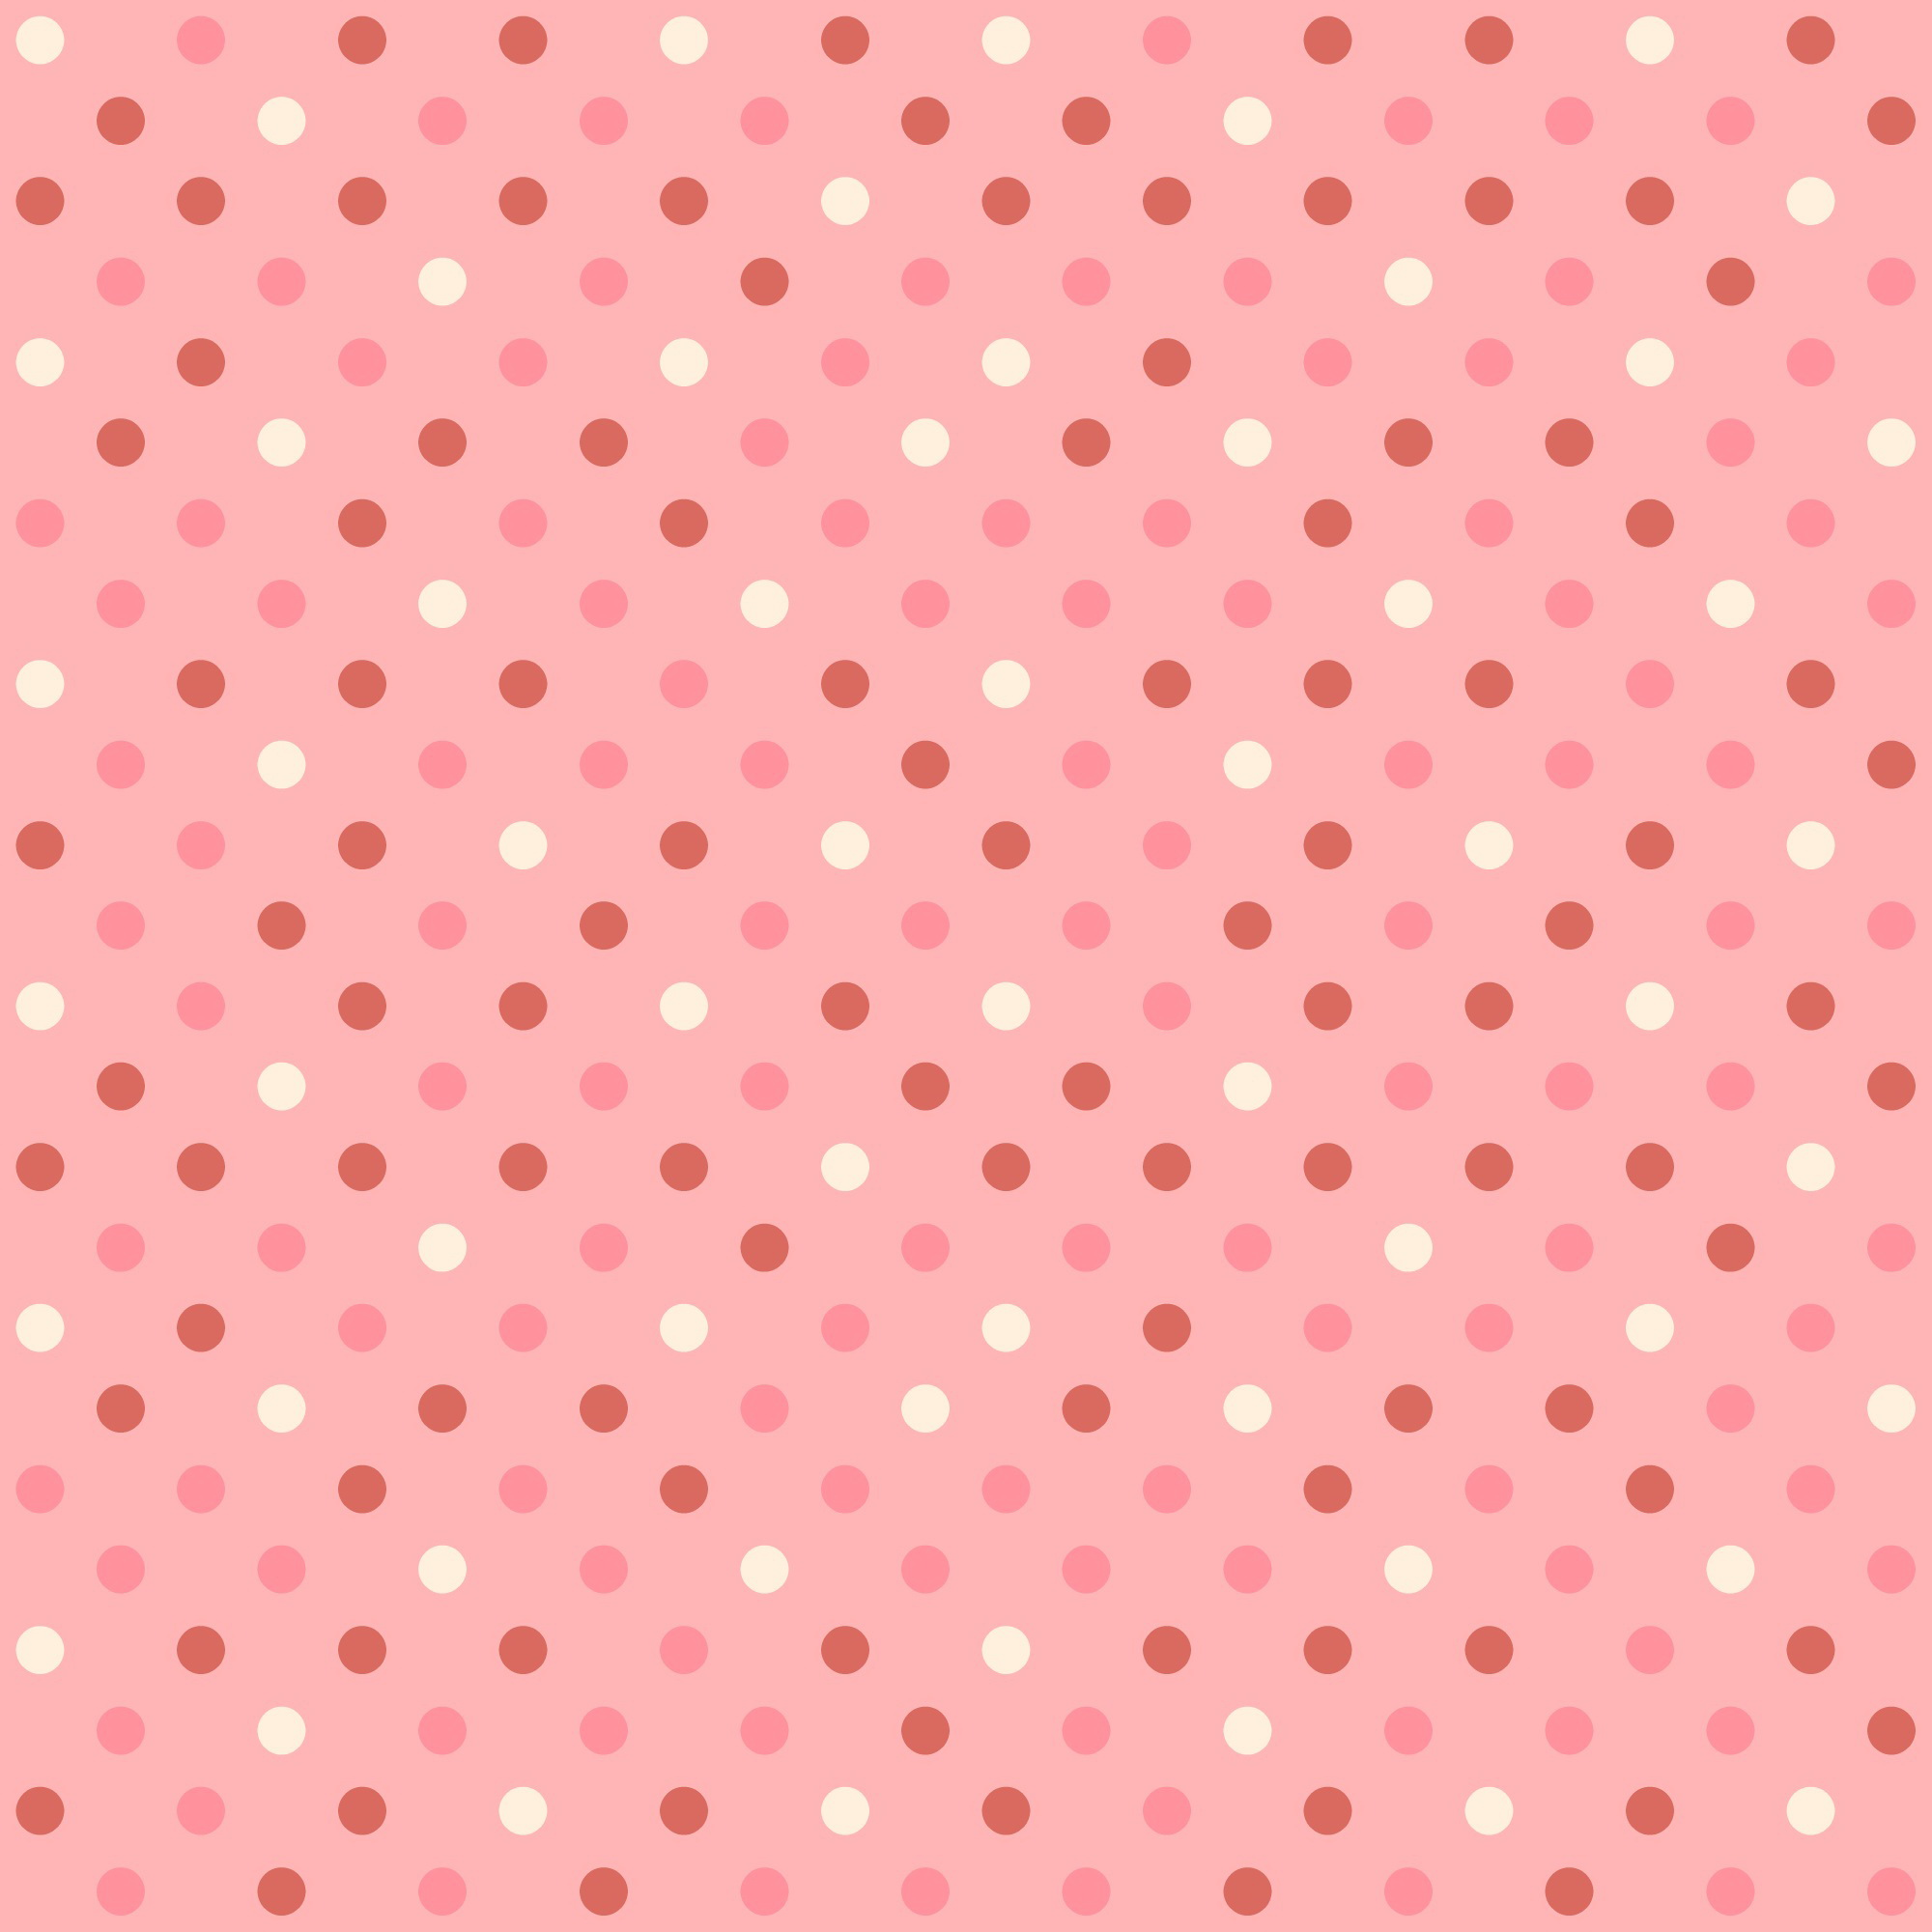 Pink Polka Dot Wallpaper: Pink Polka Dot Background, Pink, Polka Dot, Grain